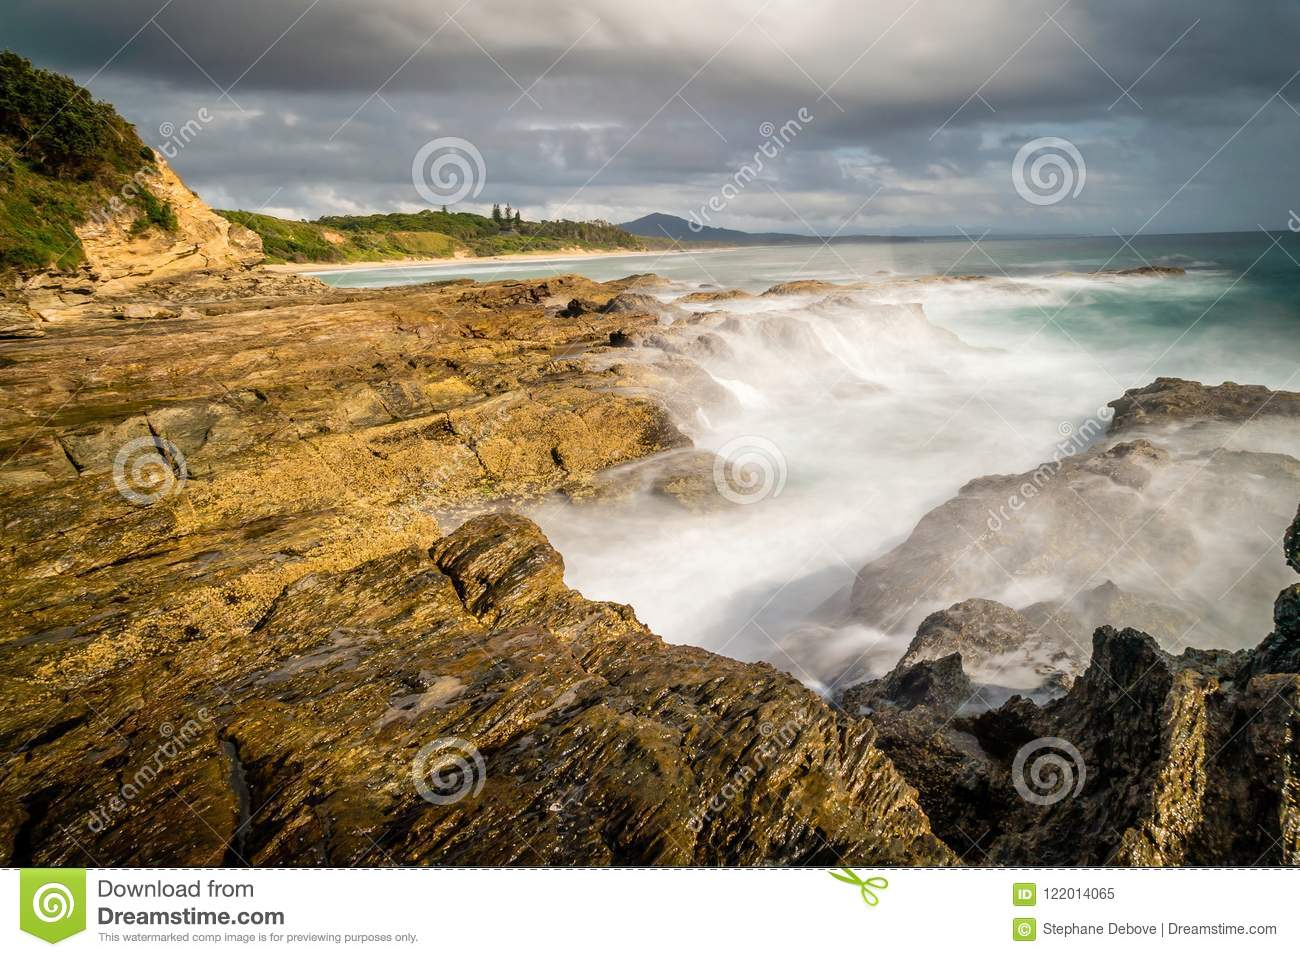 Coast in Nambucca Heads in New South Wales, Australia, long exposure shot